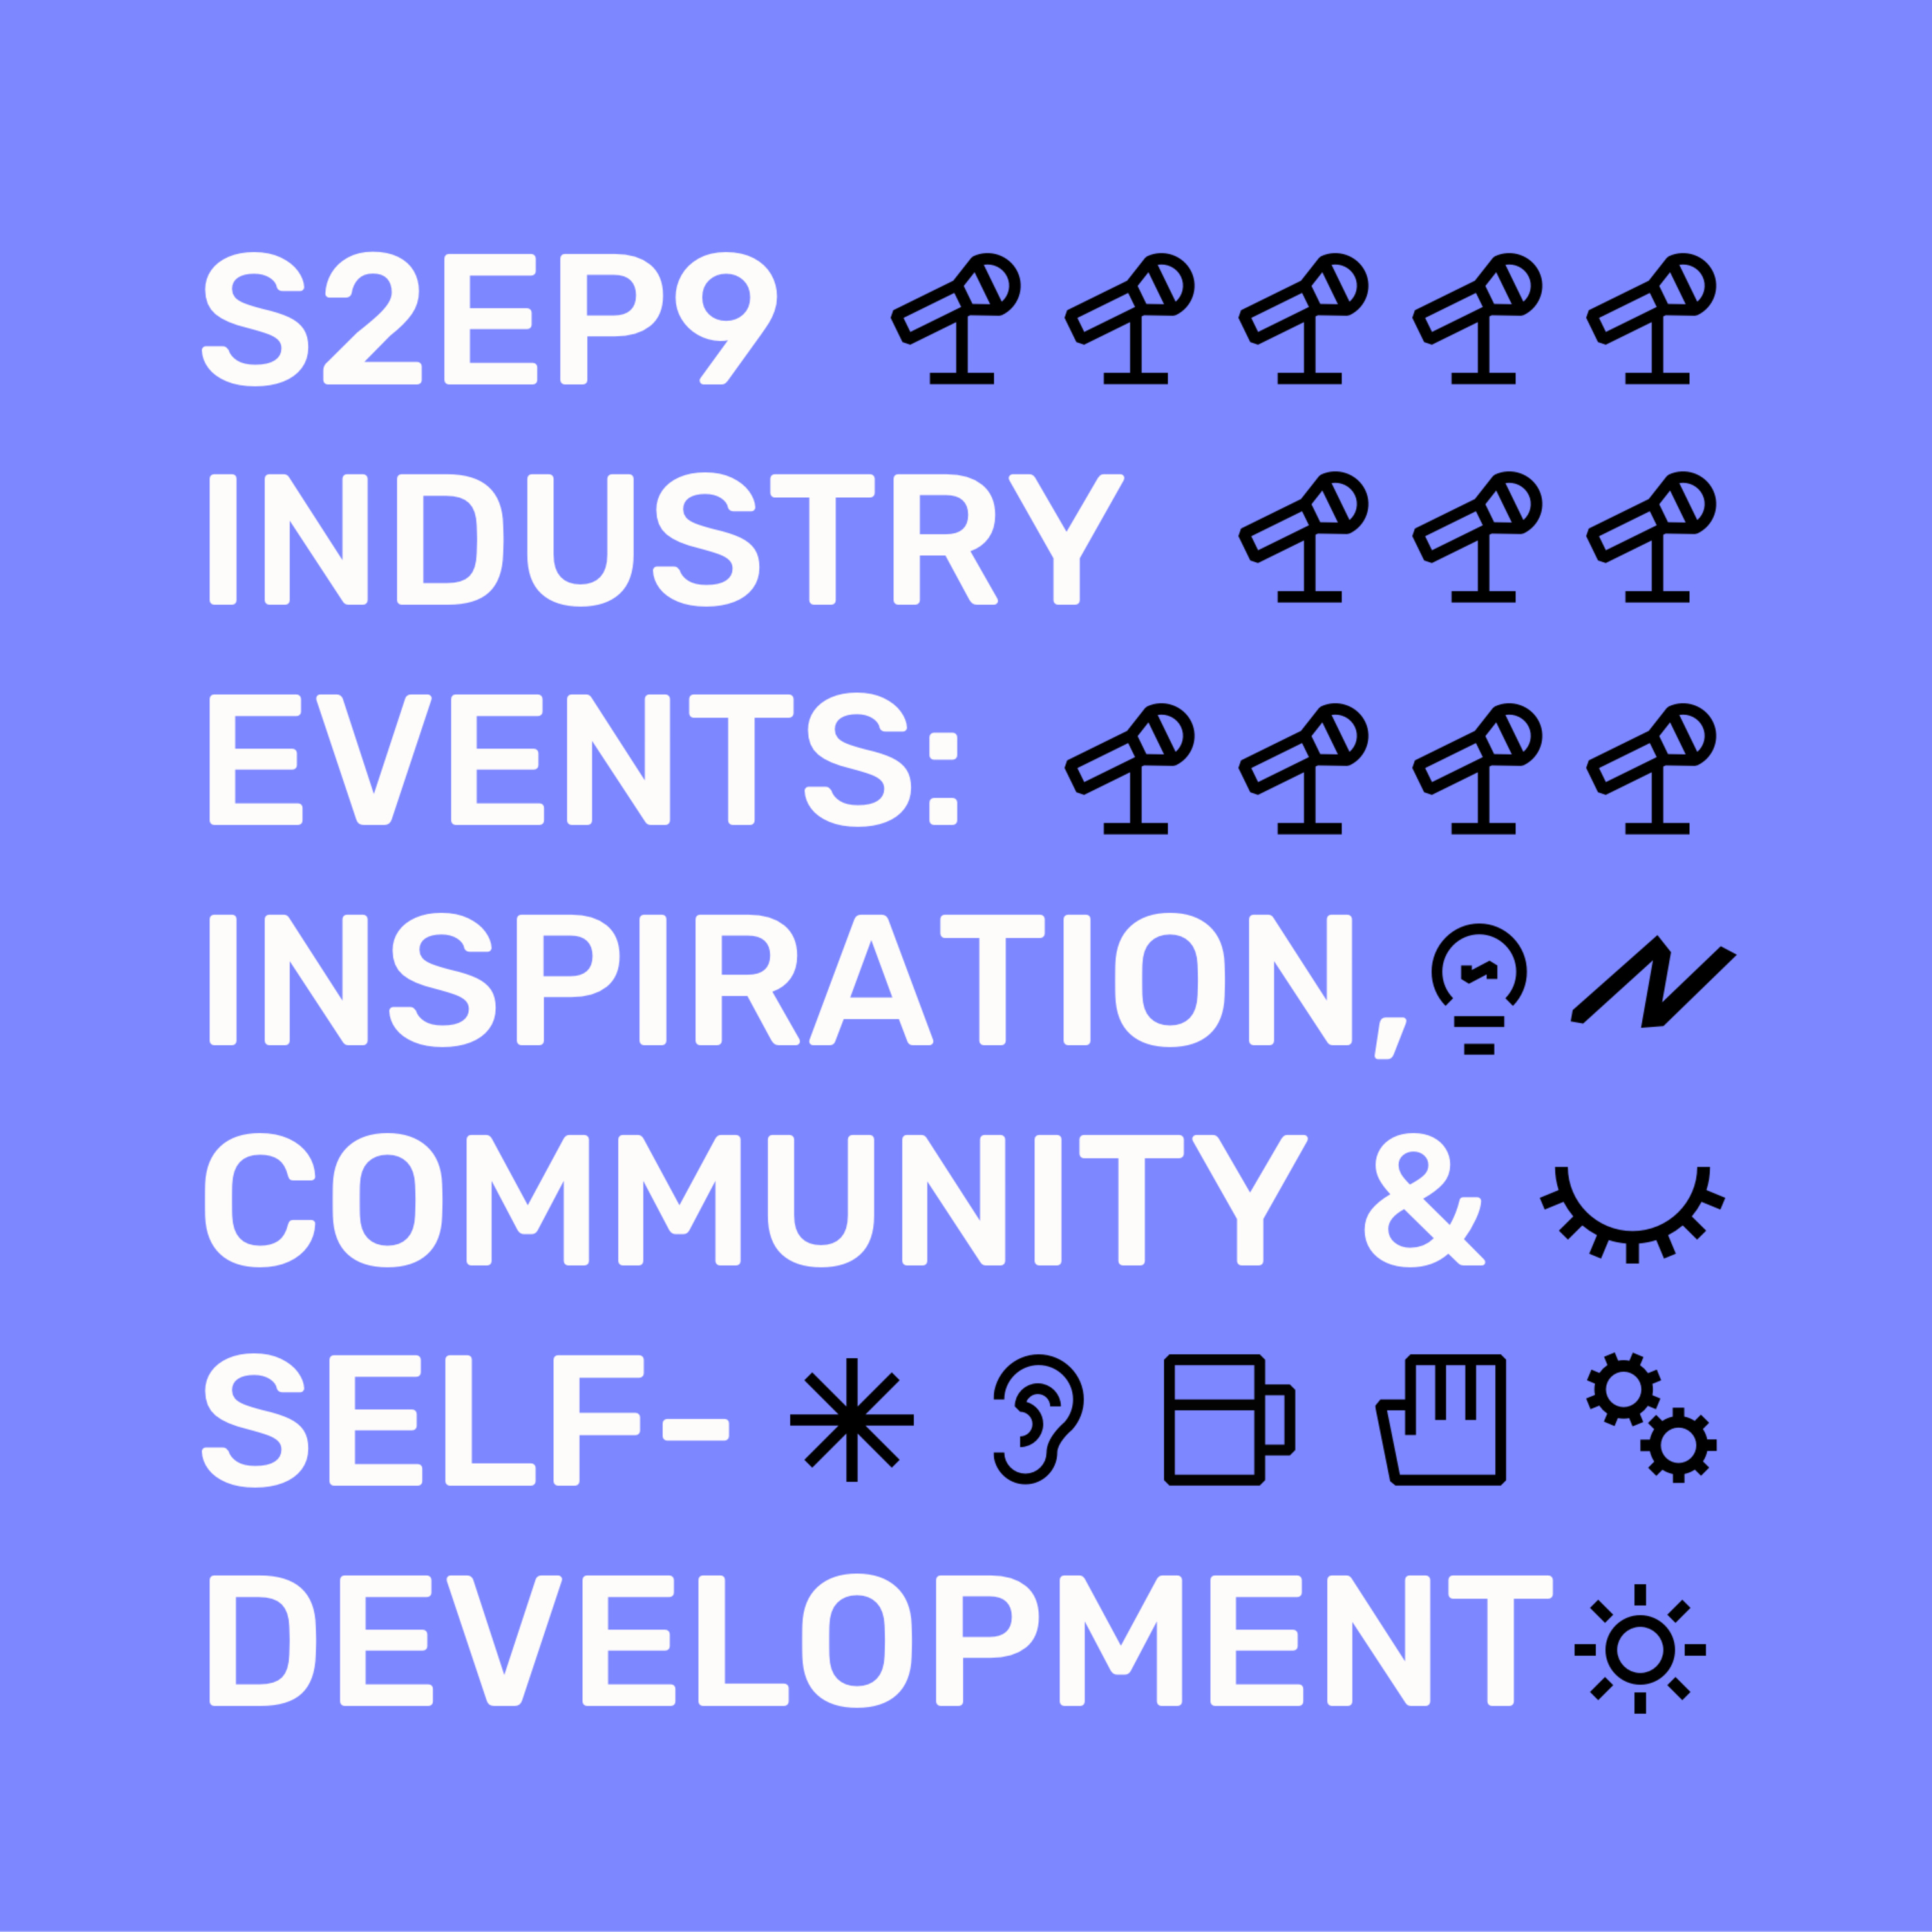 S2Ep9 Industry Events: Inspiration, community and self-development